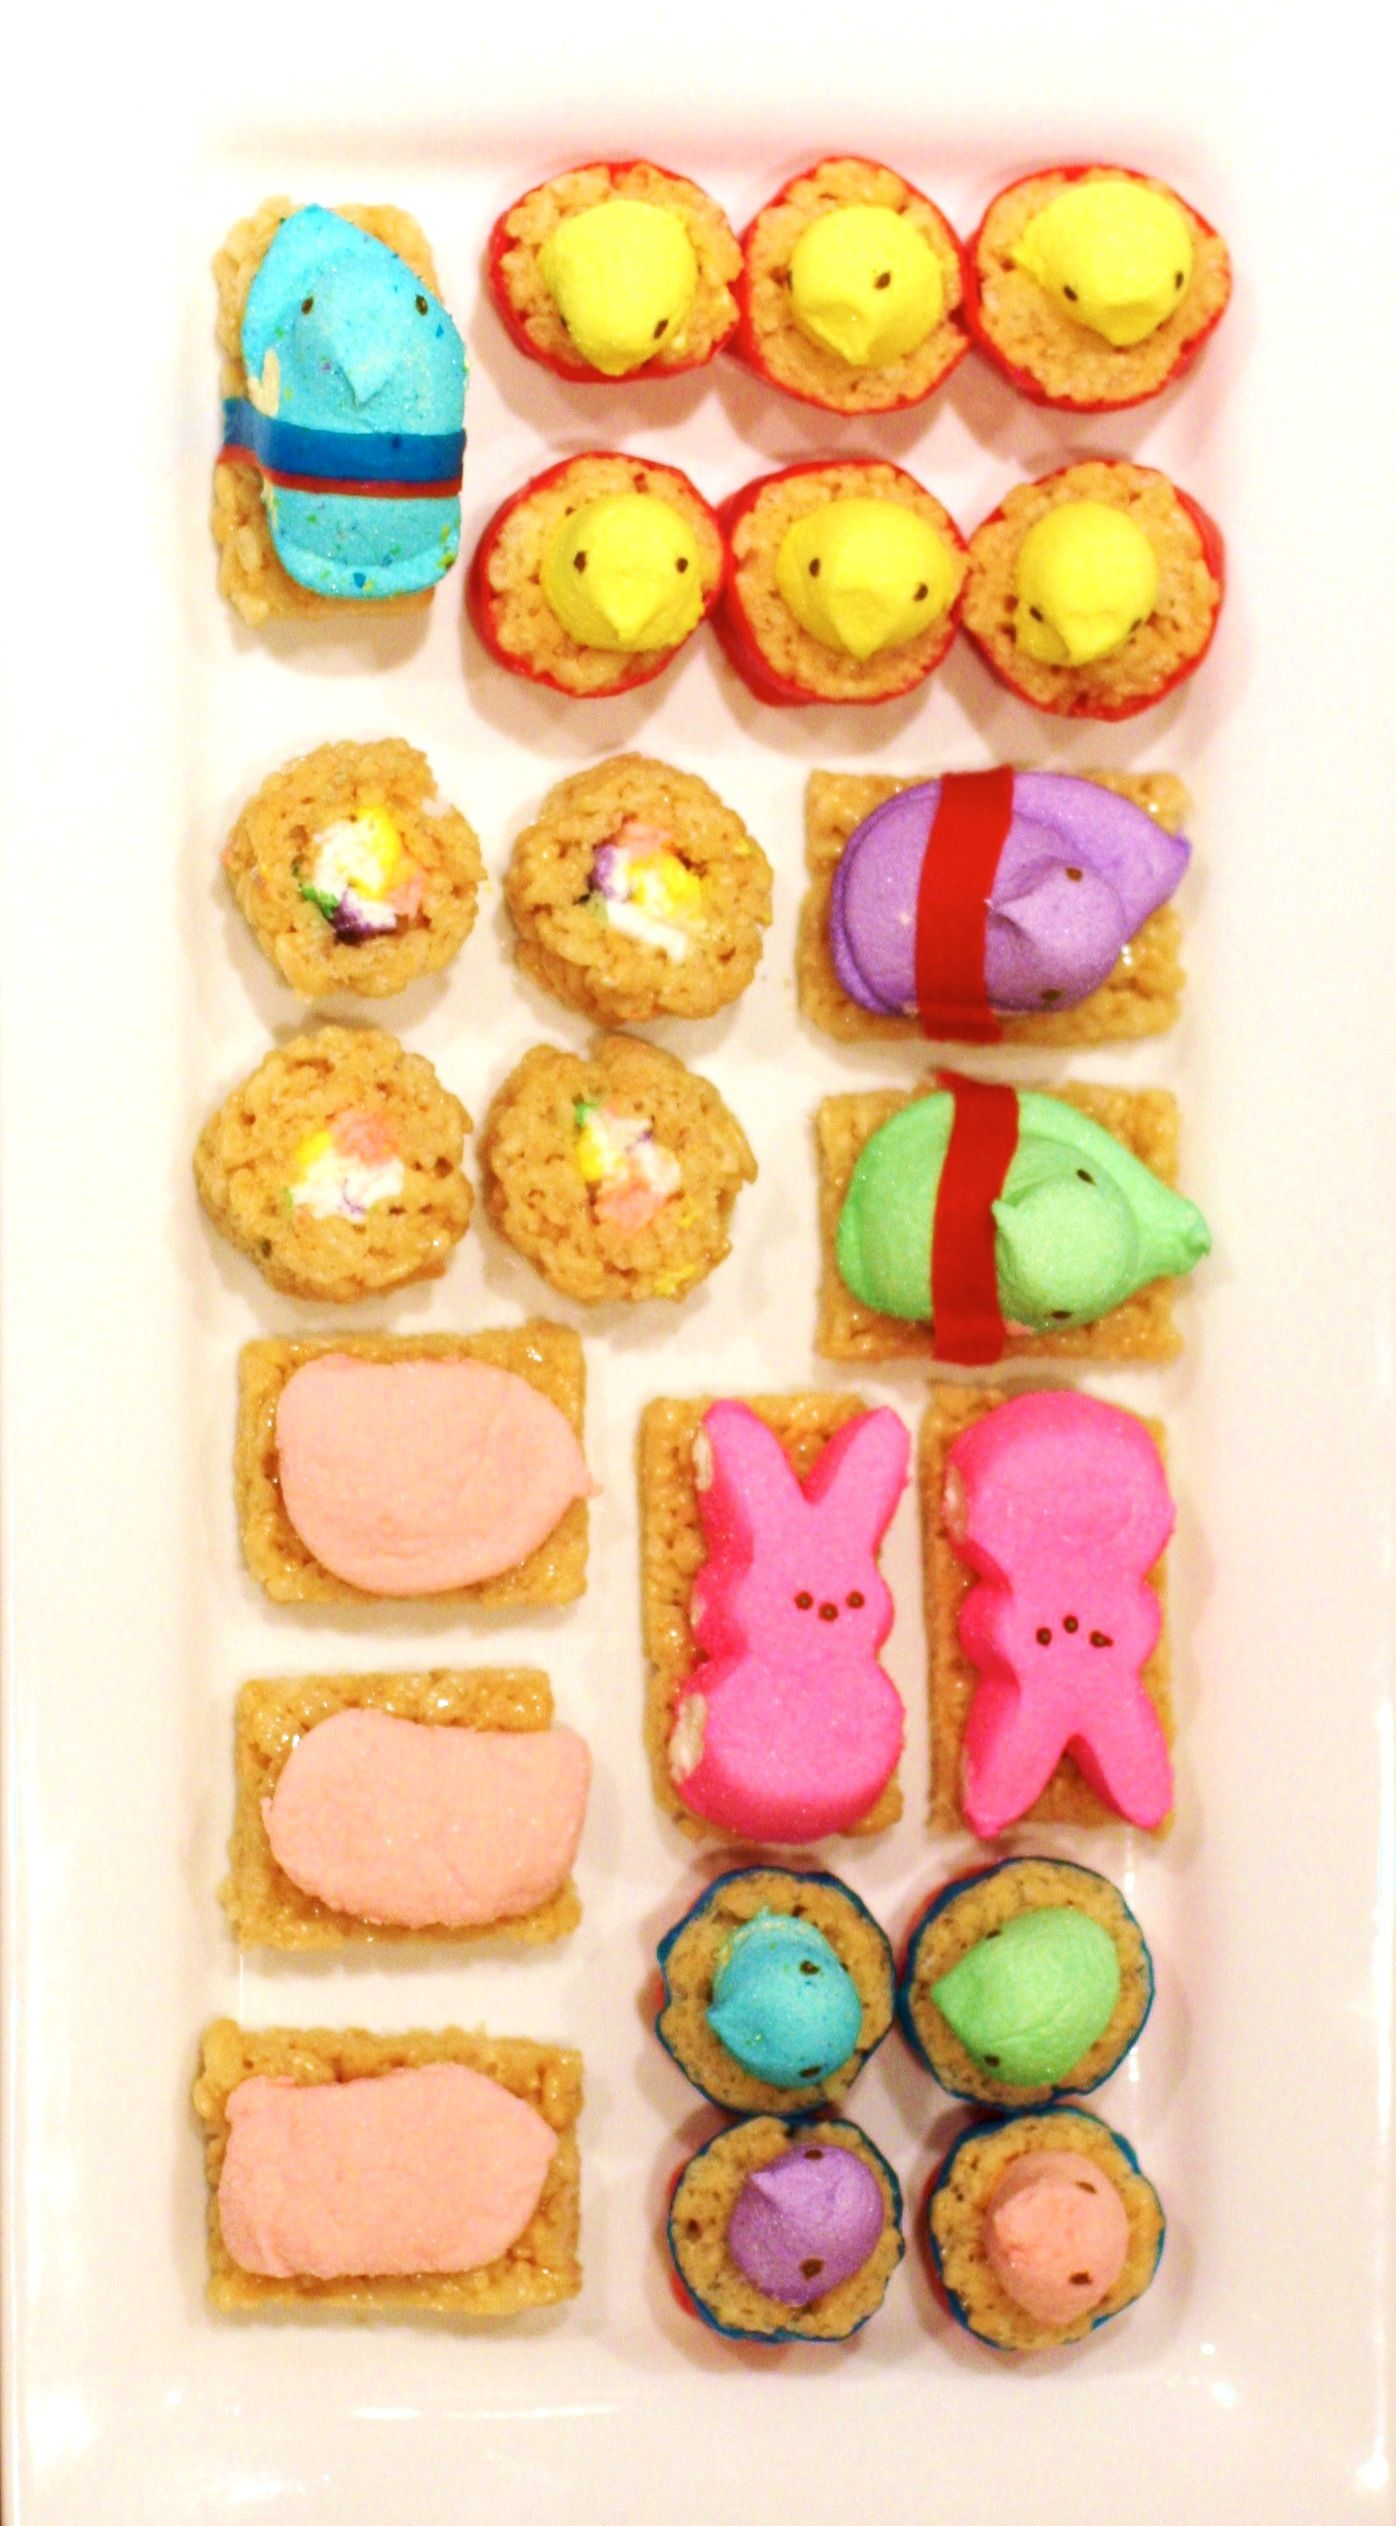 "'Like' to vote for Jen Goemans' @jen goemans   Peeps Sushi or ""Peepshi!"" Inspired by:  http://www.seriouseats.com/recipes/2010/03/peeps-recipes-how-to-make-peepshi-sushi-rice-krispies-treats-easter.html #HSPinParty"